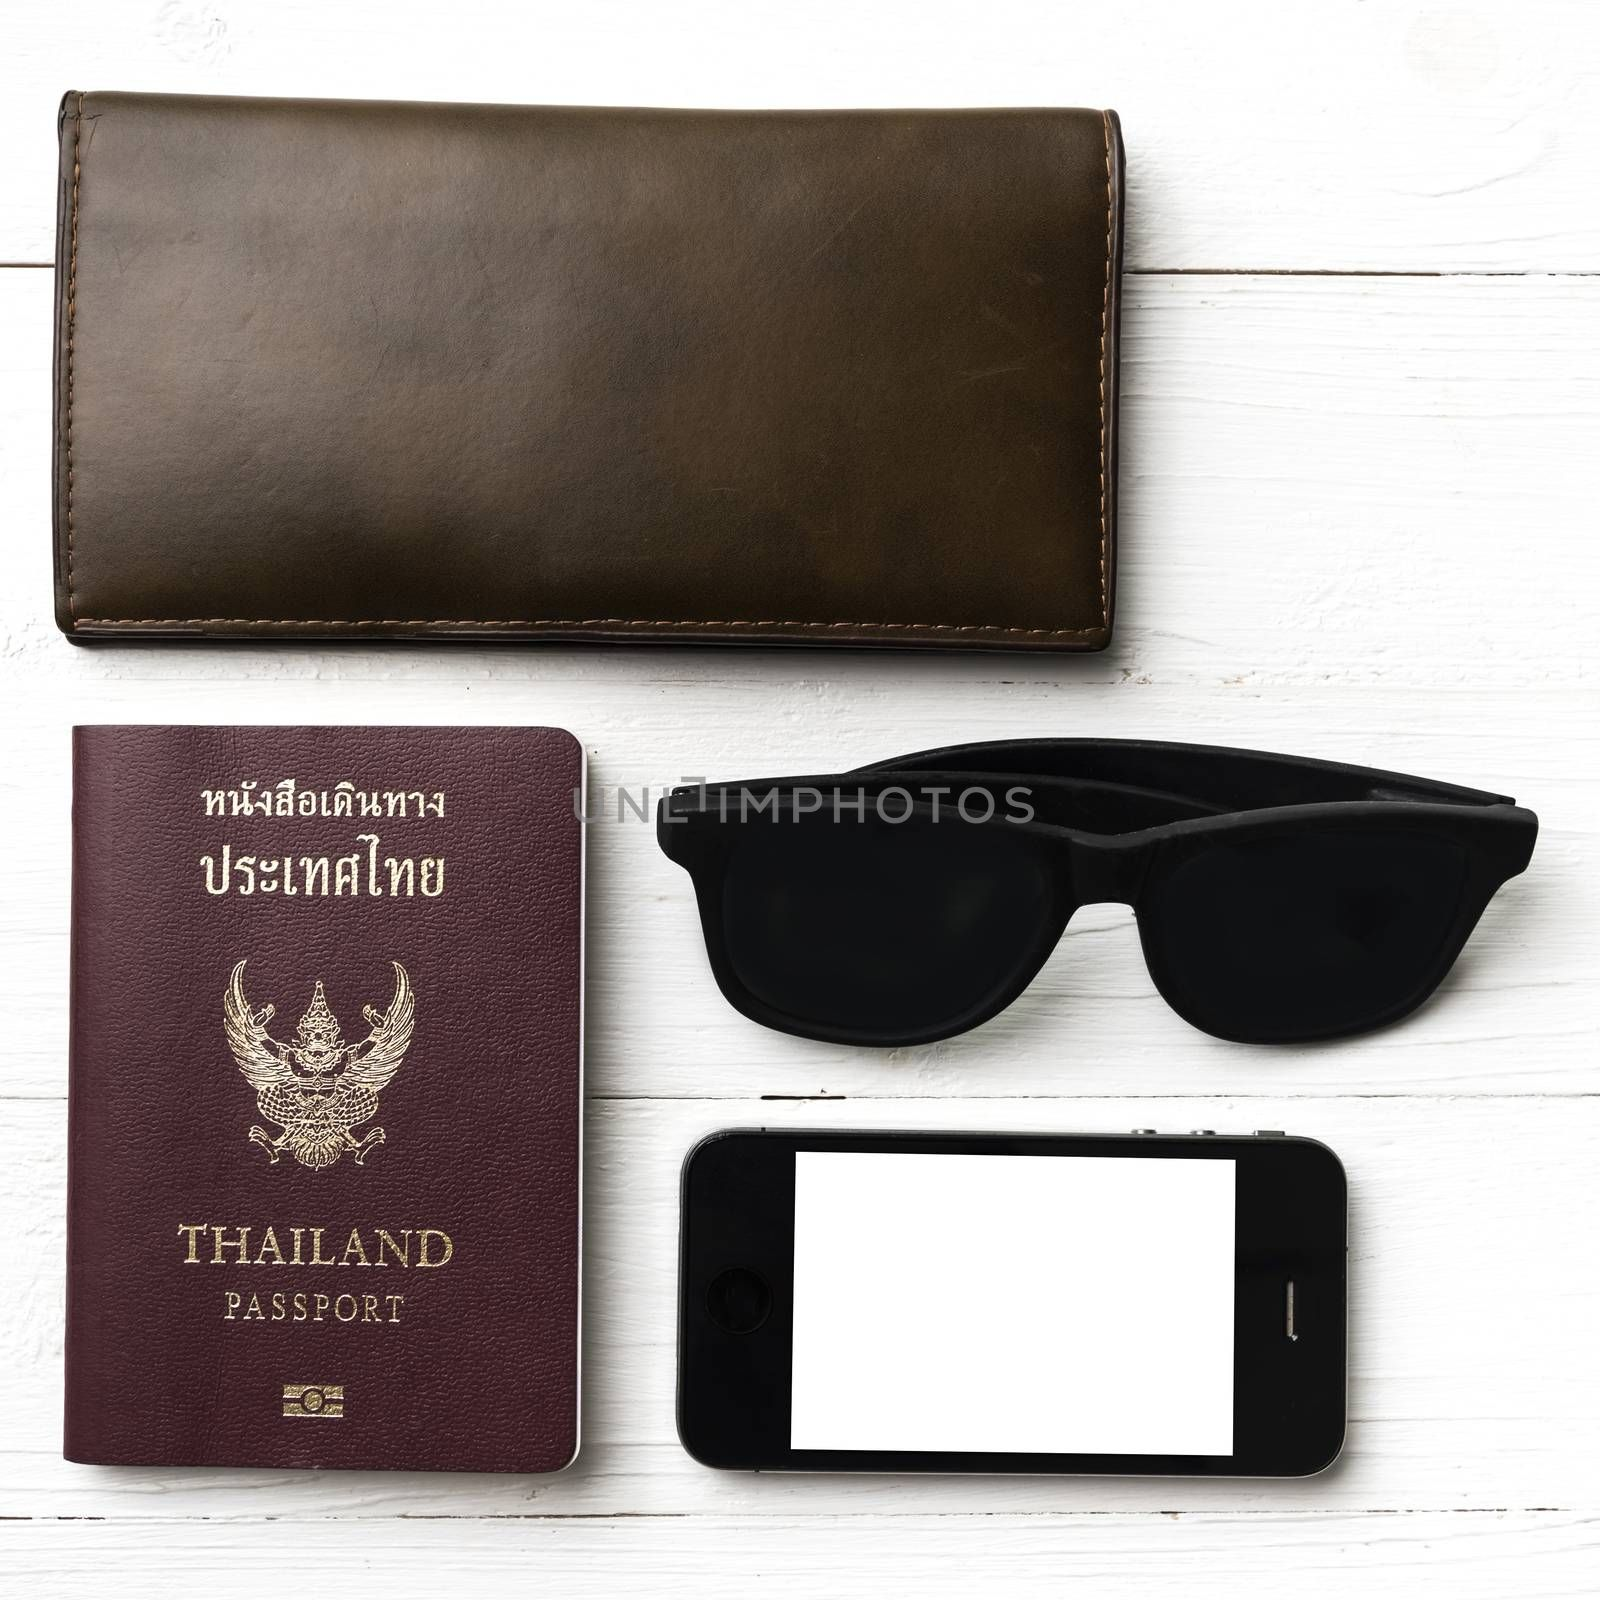 travel gadget over white table